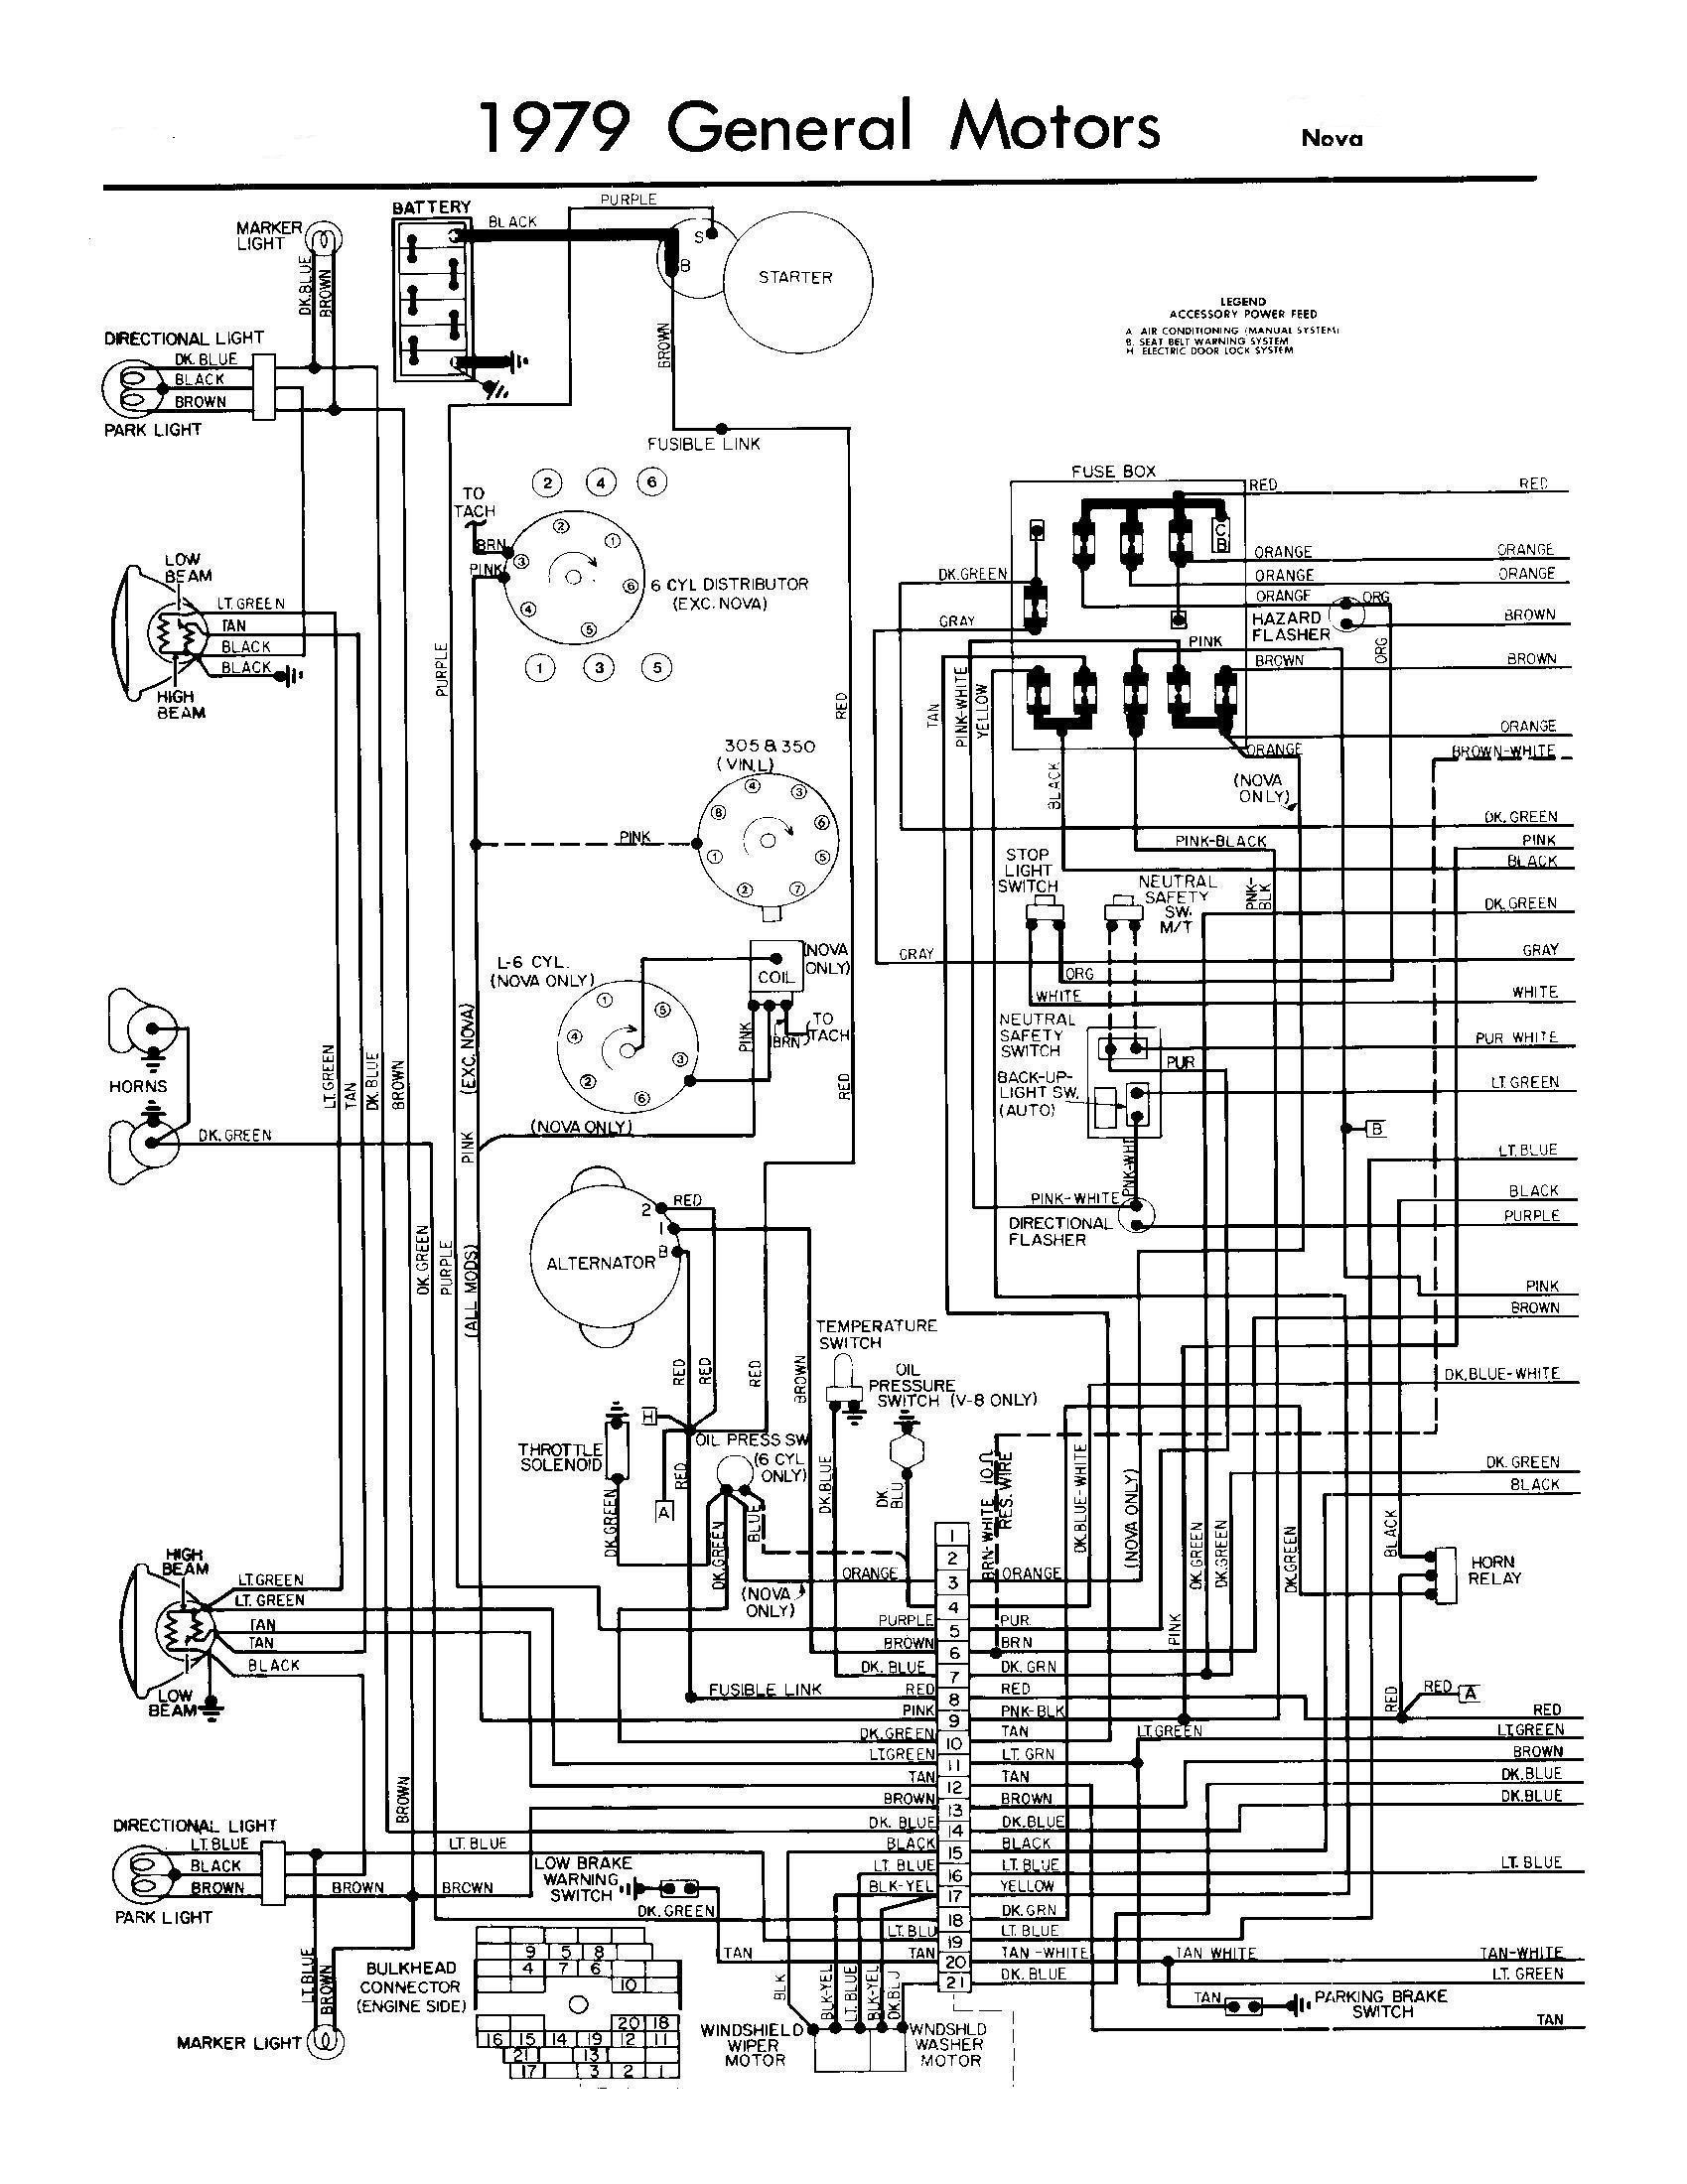 76 dodge wiring diagram wiring data diagram rh 4 meditativ wandern de